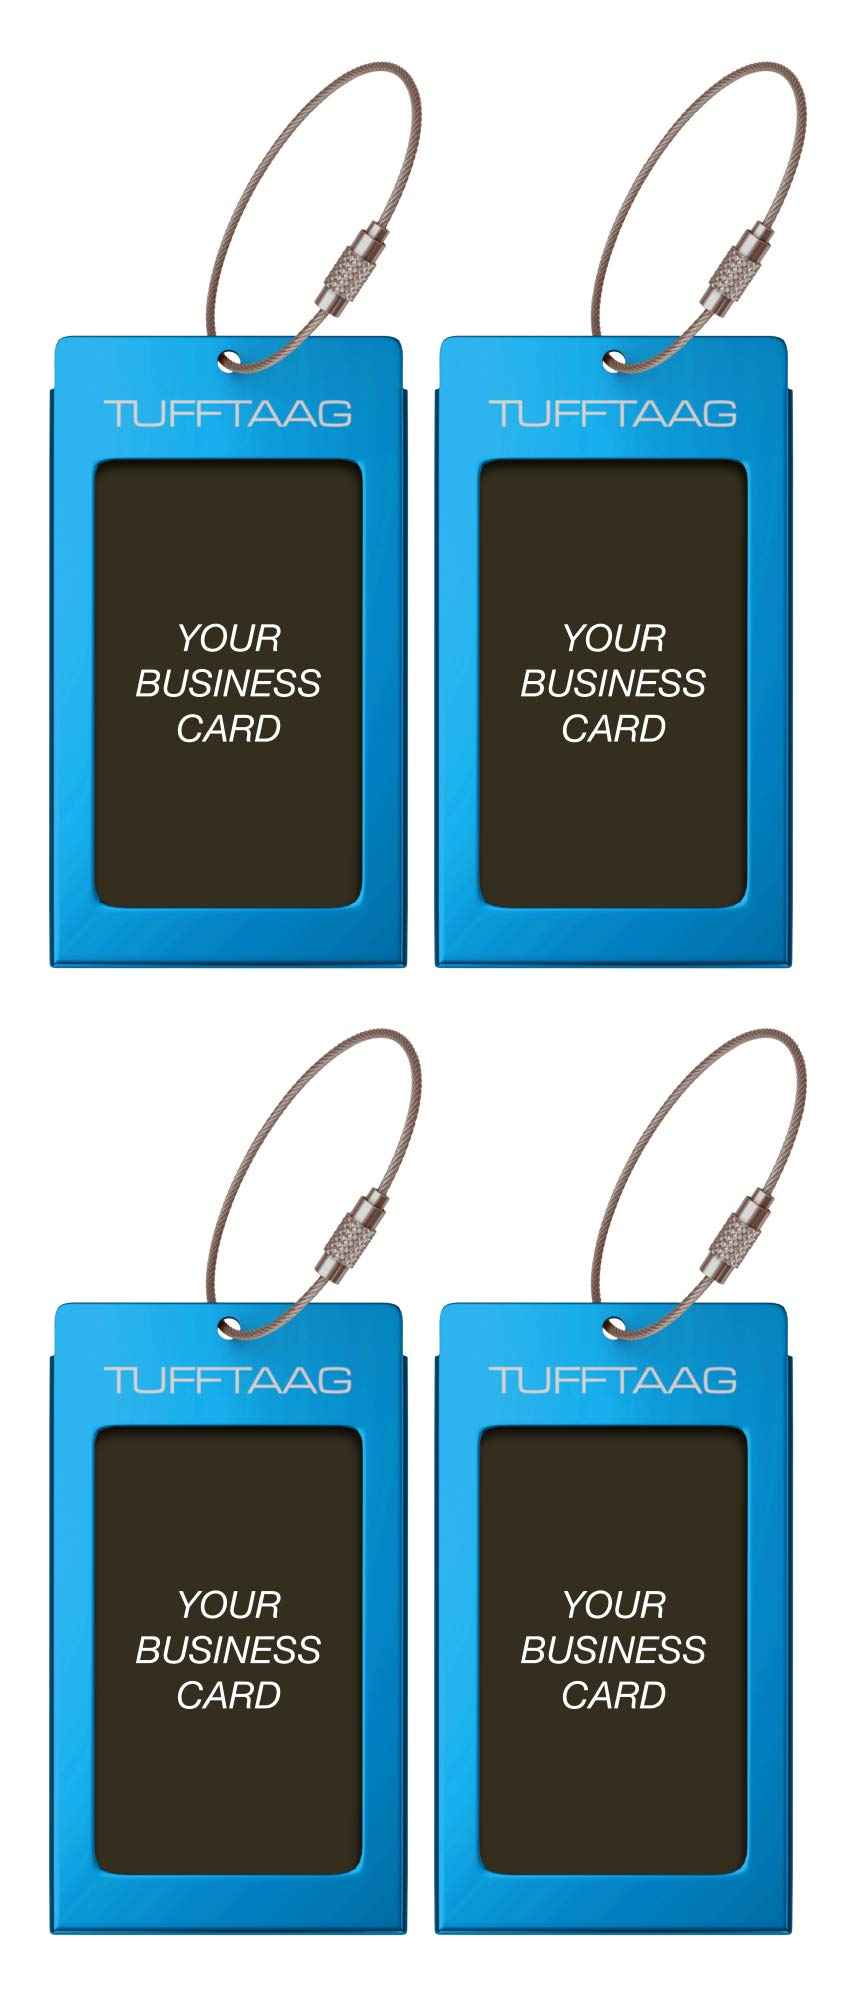 Luggage Tags TUFFTAAG for Business Cards, Metal Suitcase Labels, 4 Pack Bundle (4 Blue)